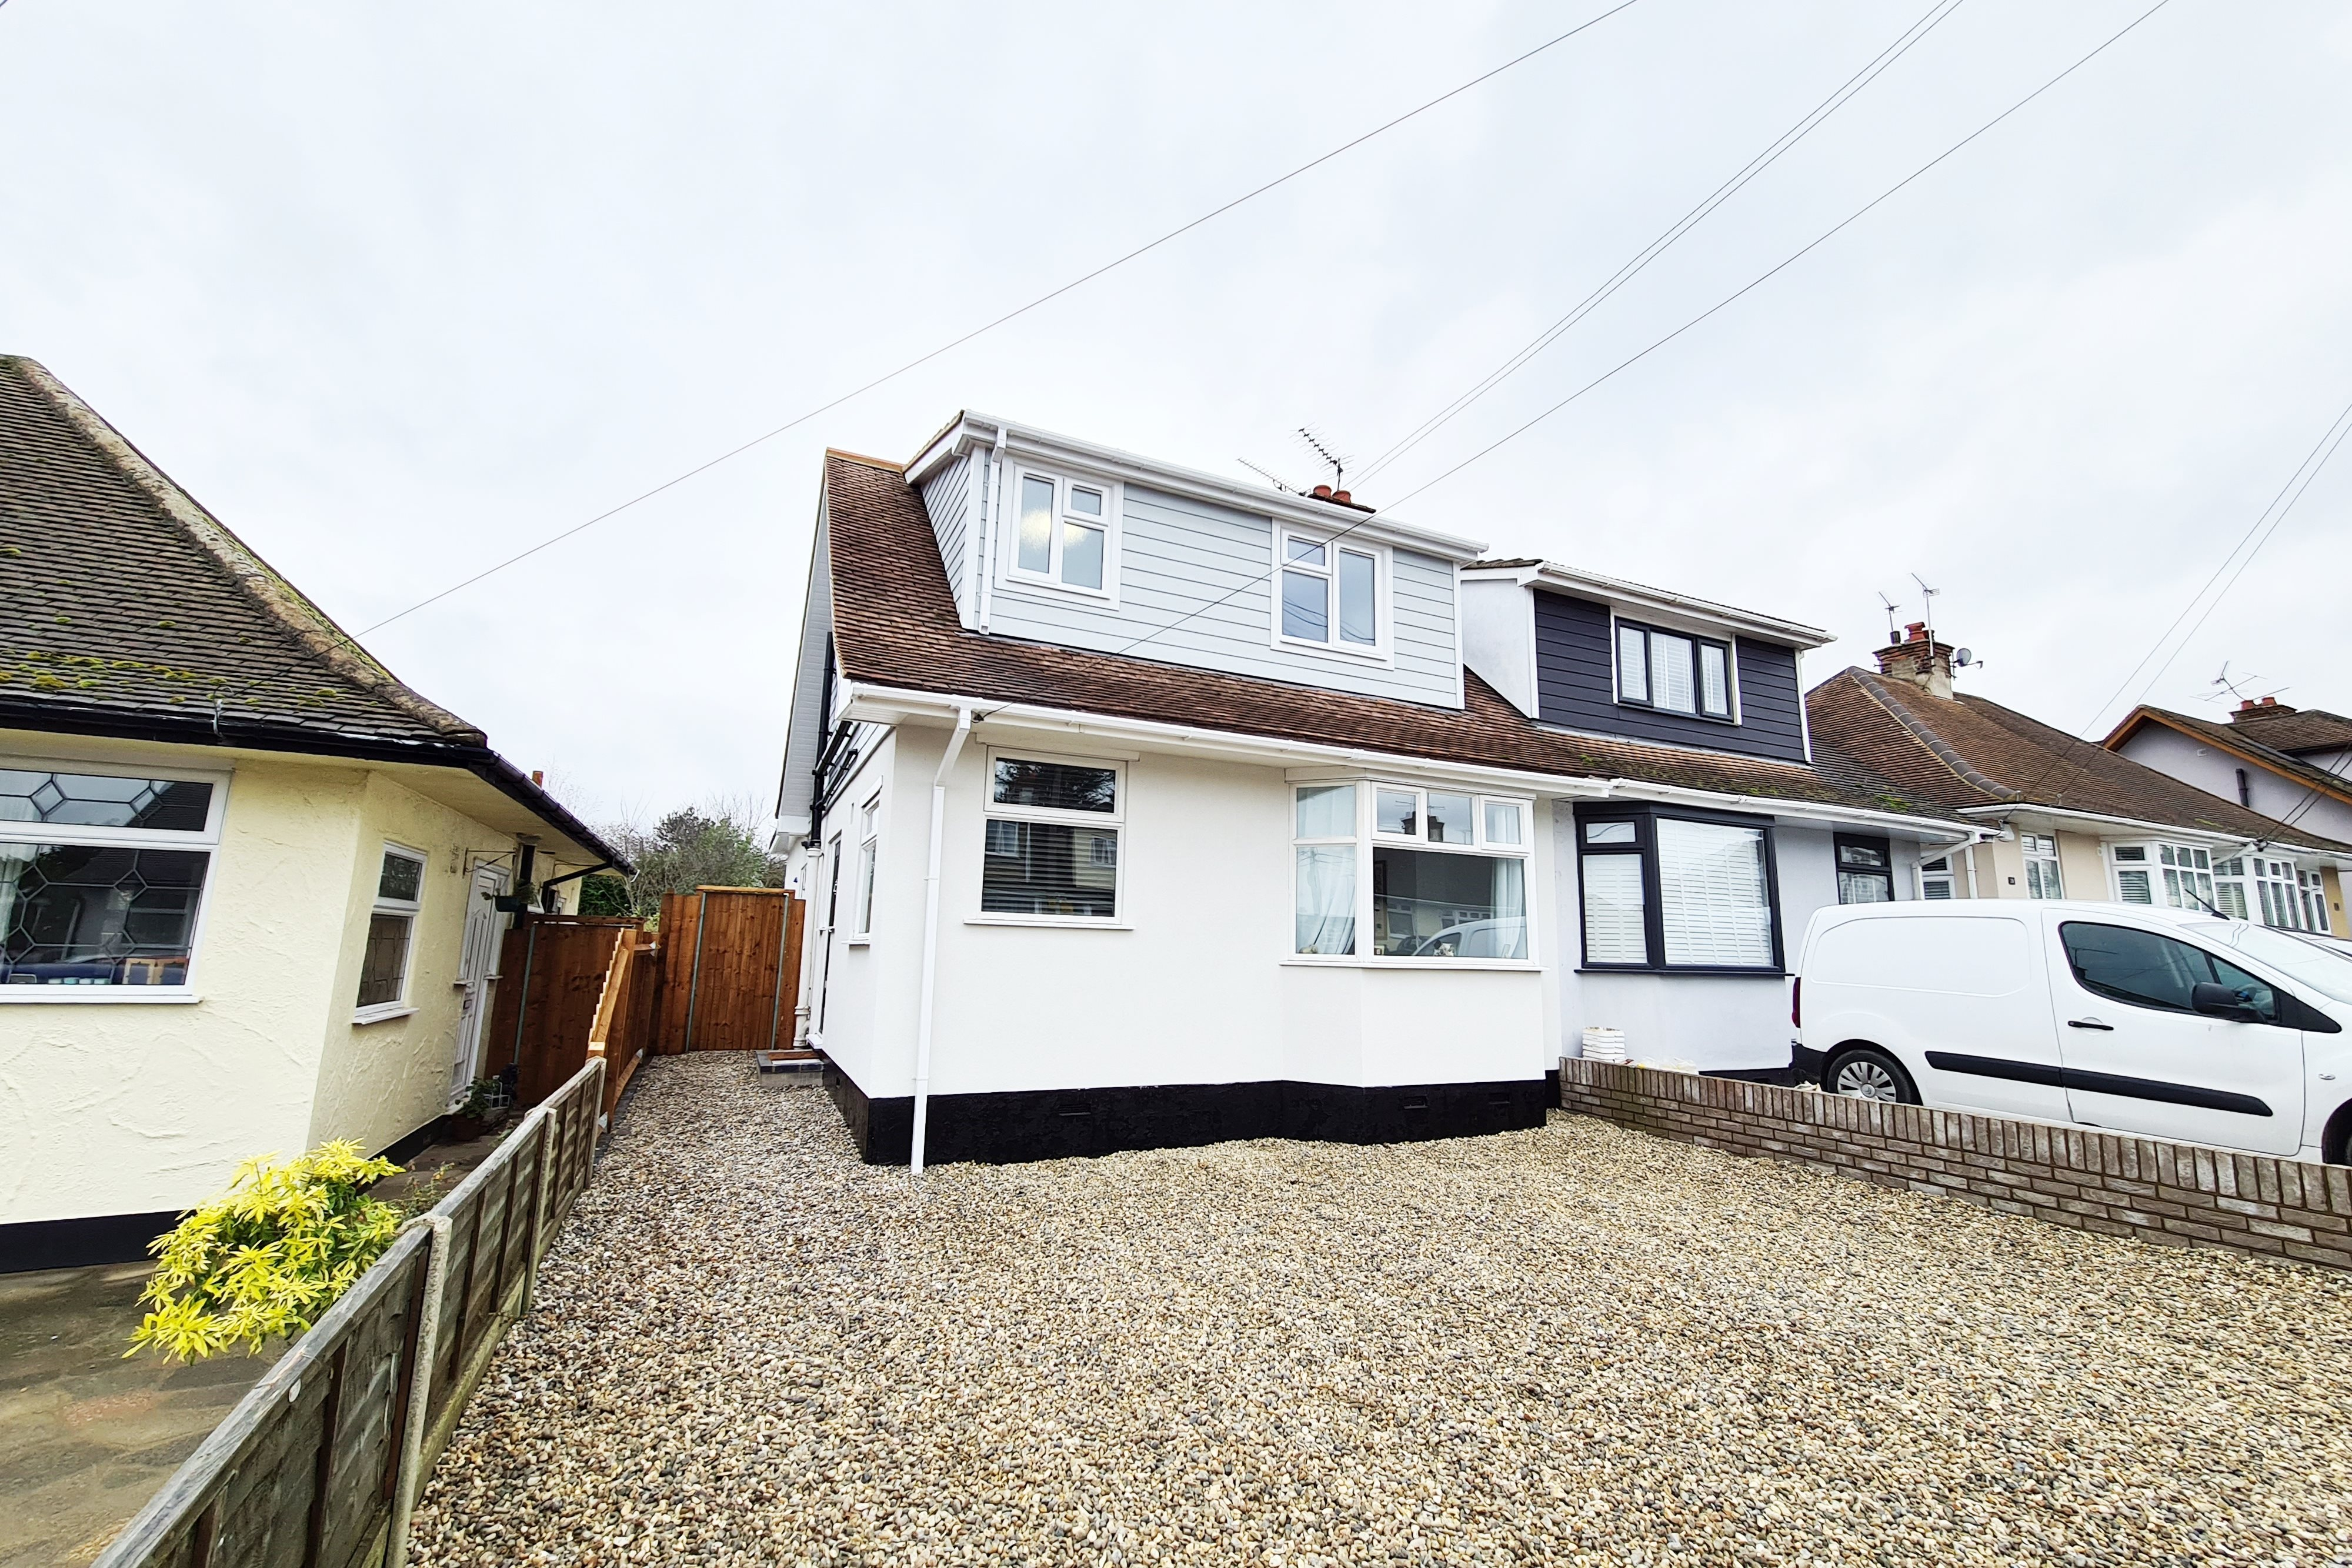 4 bed house for sale in Oakwood Road, Rayleigh - Property Image 1